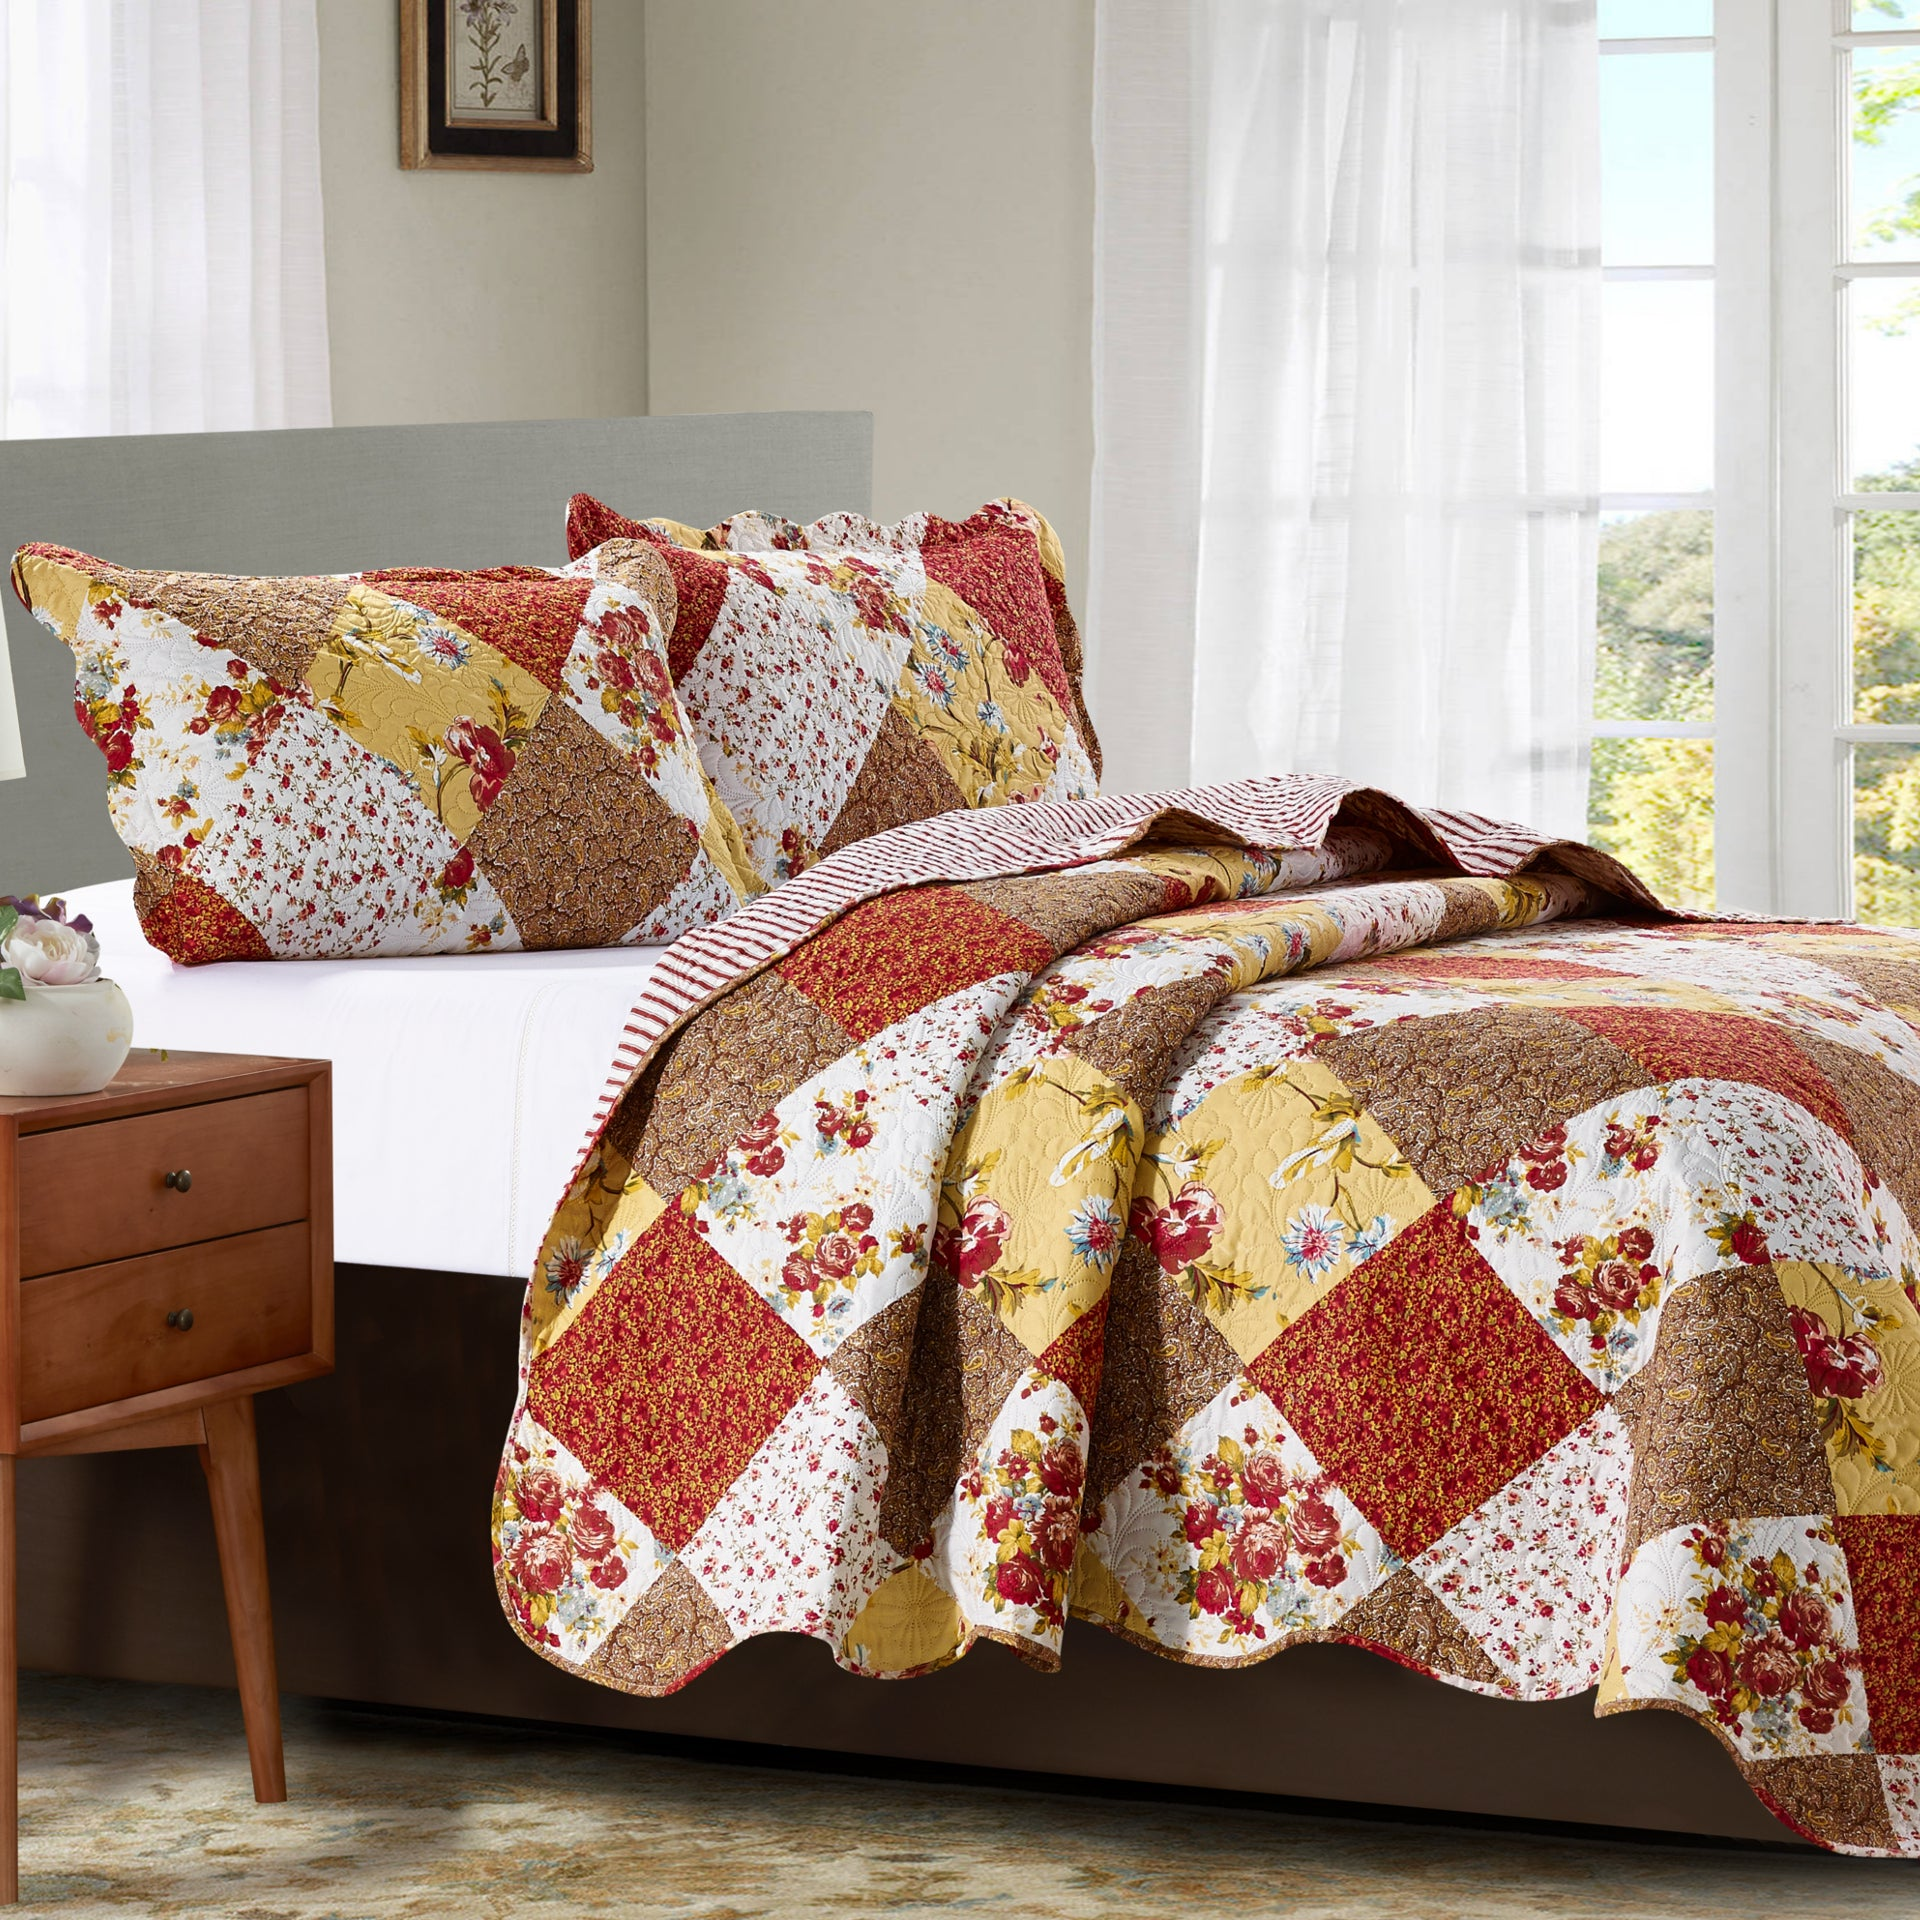 Suzy 3 Piece Quilt Set - Rust - Glory Home Design